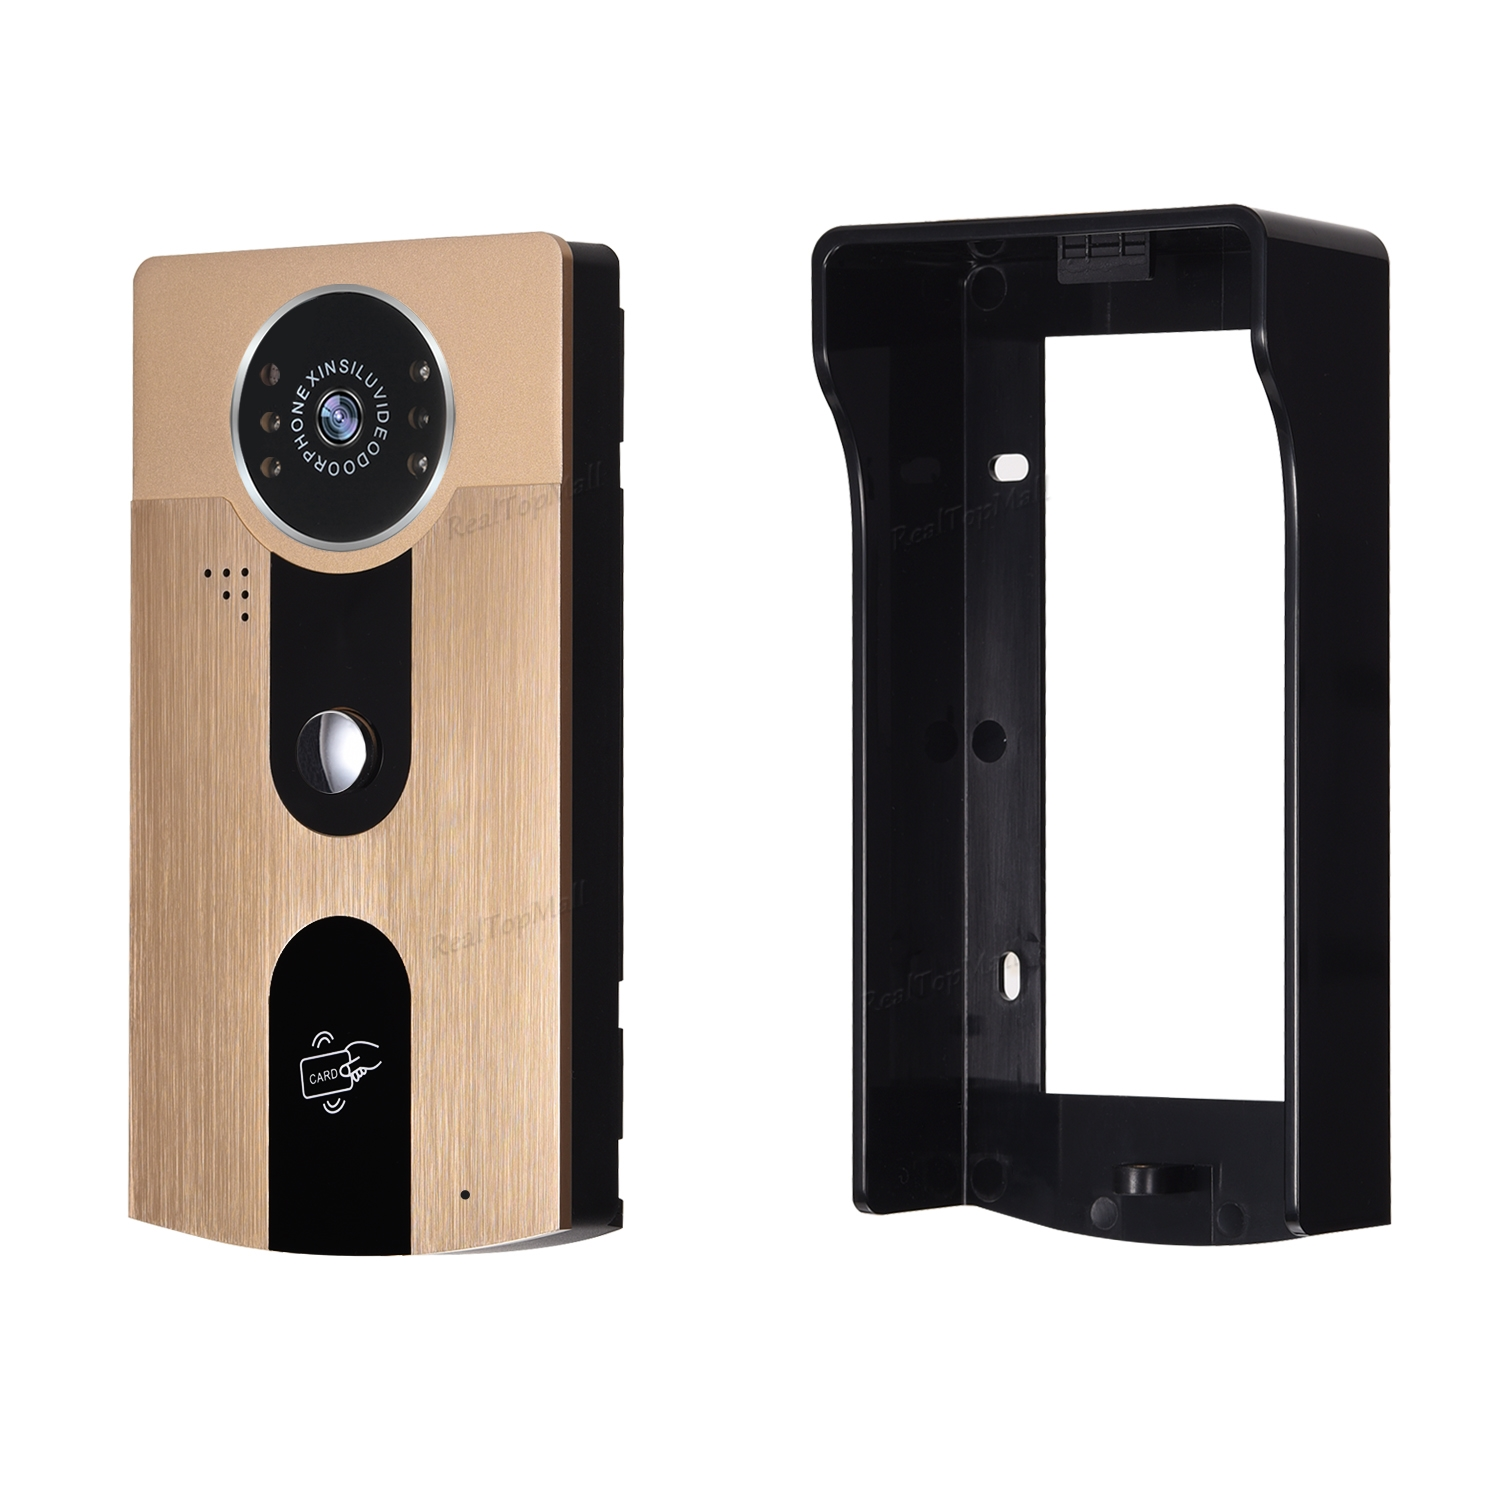 New 3G/4G Wireless Wifi Doorbell HD Camera For IOS Android Phone Remote View Unlock Metal RFID Door Intercom Free Shipping 2016 new wifi doorbell video door phone support 3g 4g ios android for ipad smart phone tablet control wireless door intercom